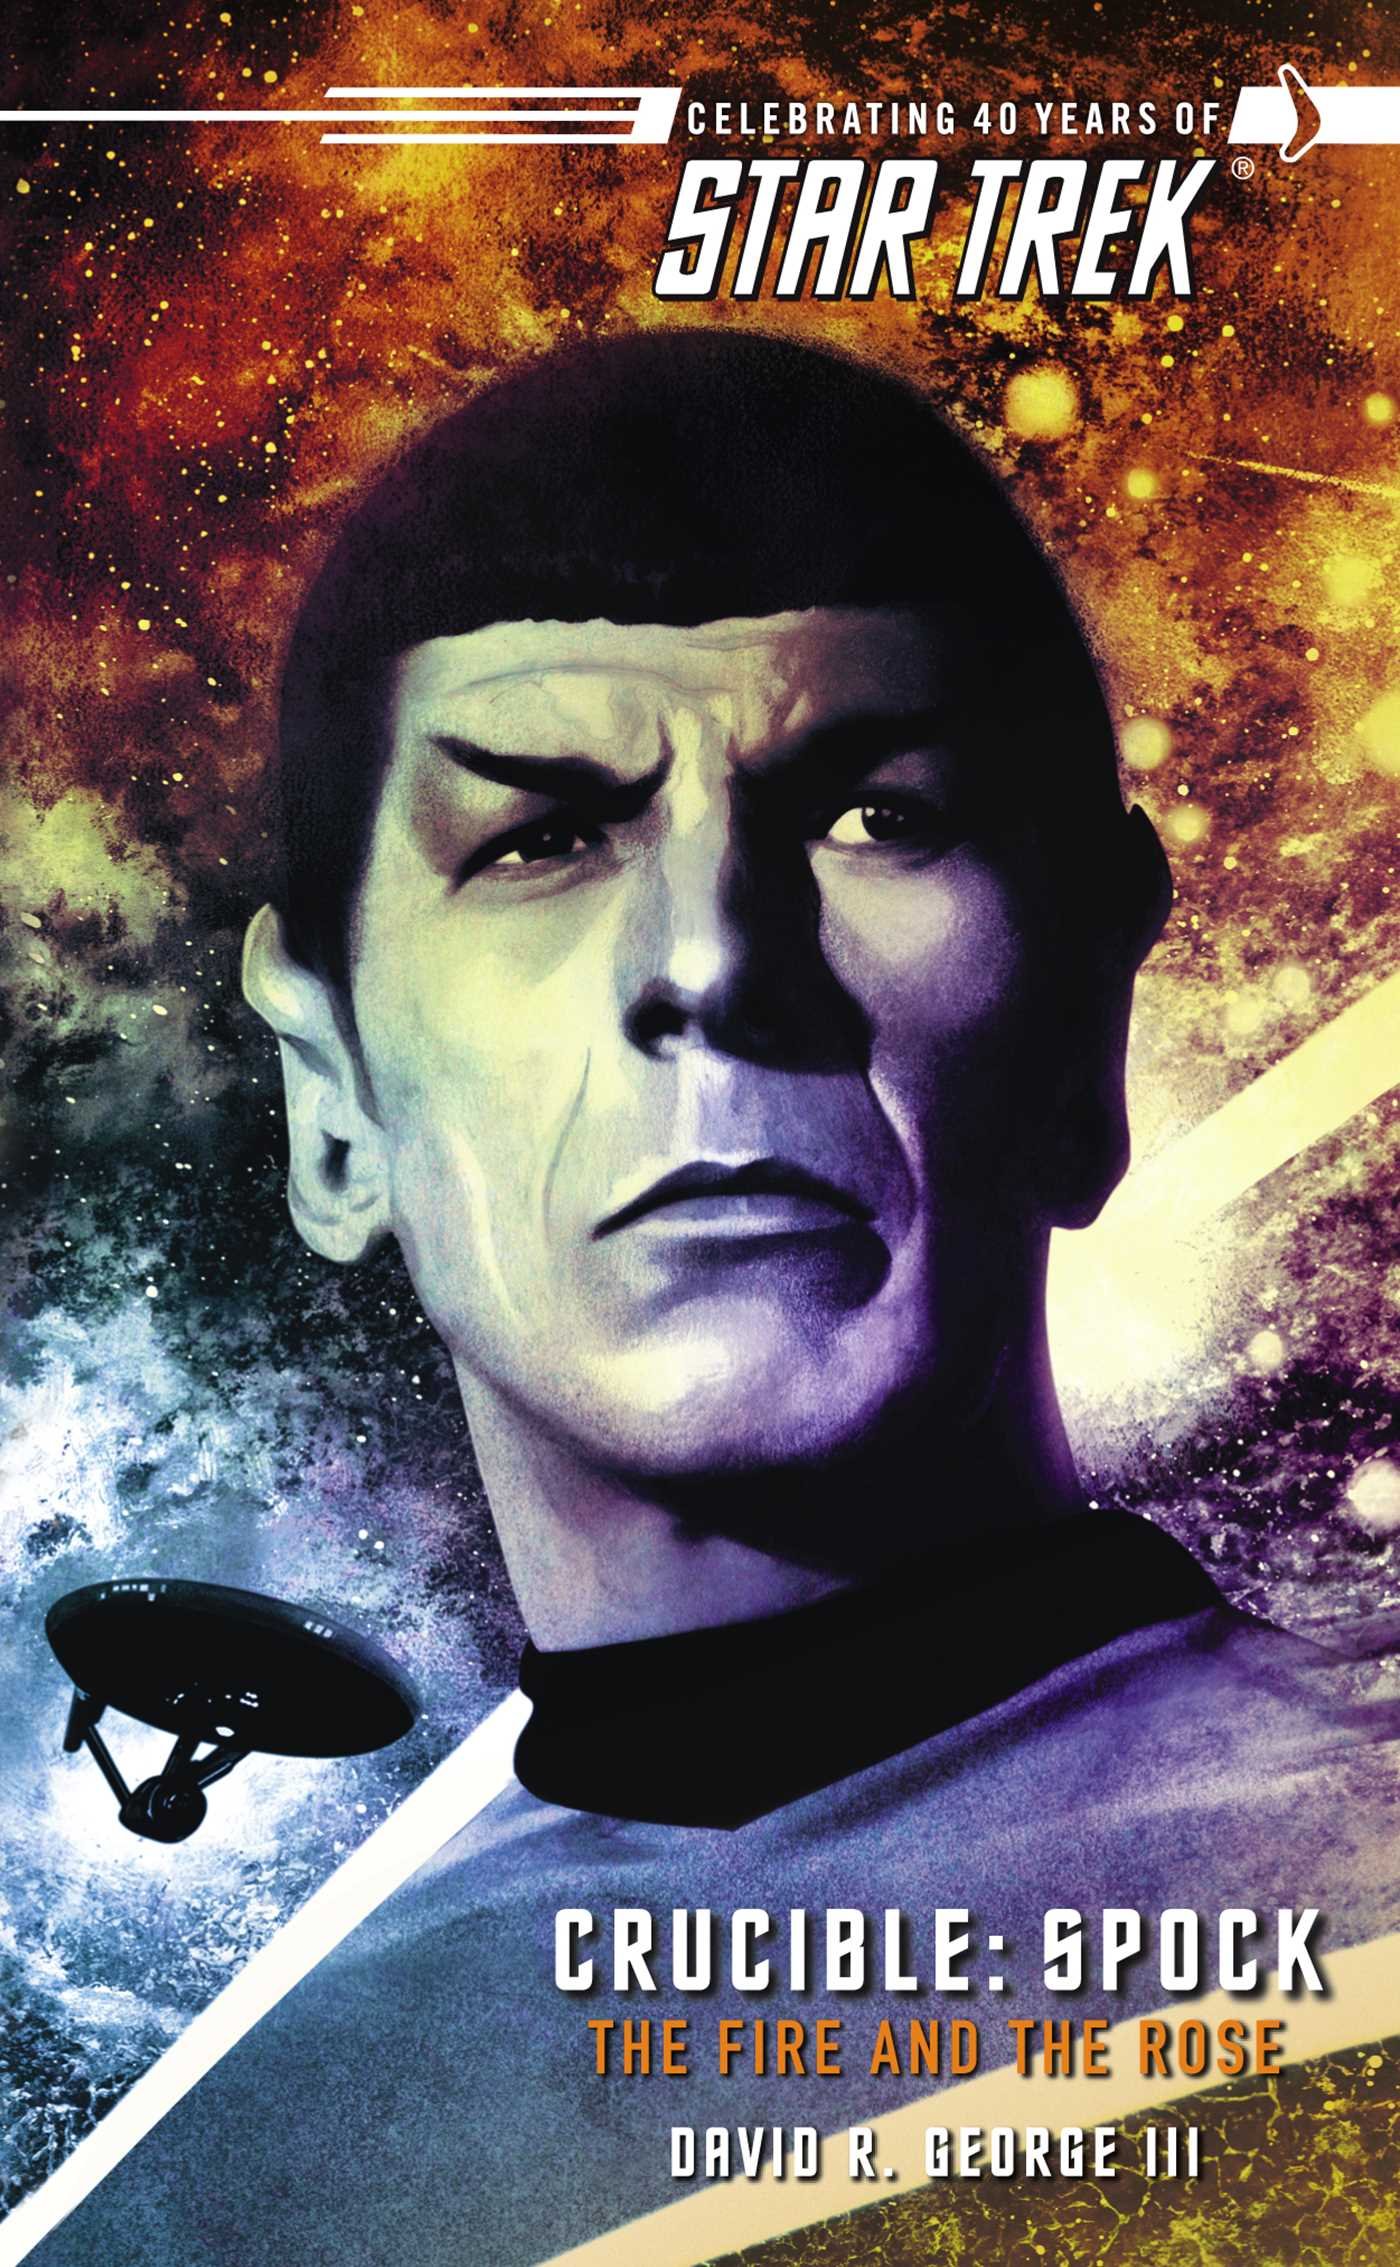 Star-trek-the-original-series-crucible-spock-the-fire-and-the-rose-9781416531067_hr